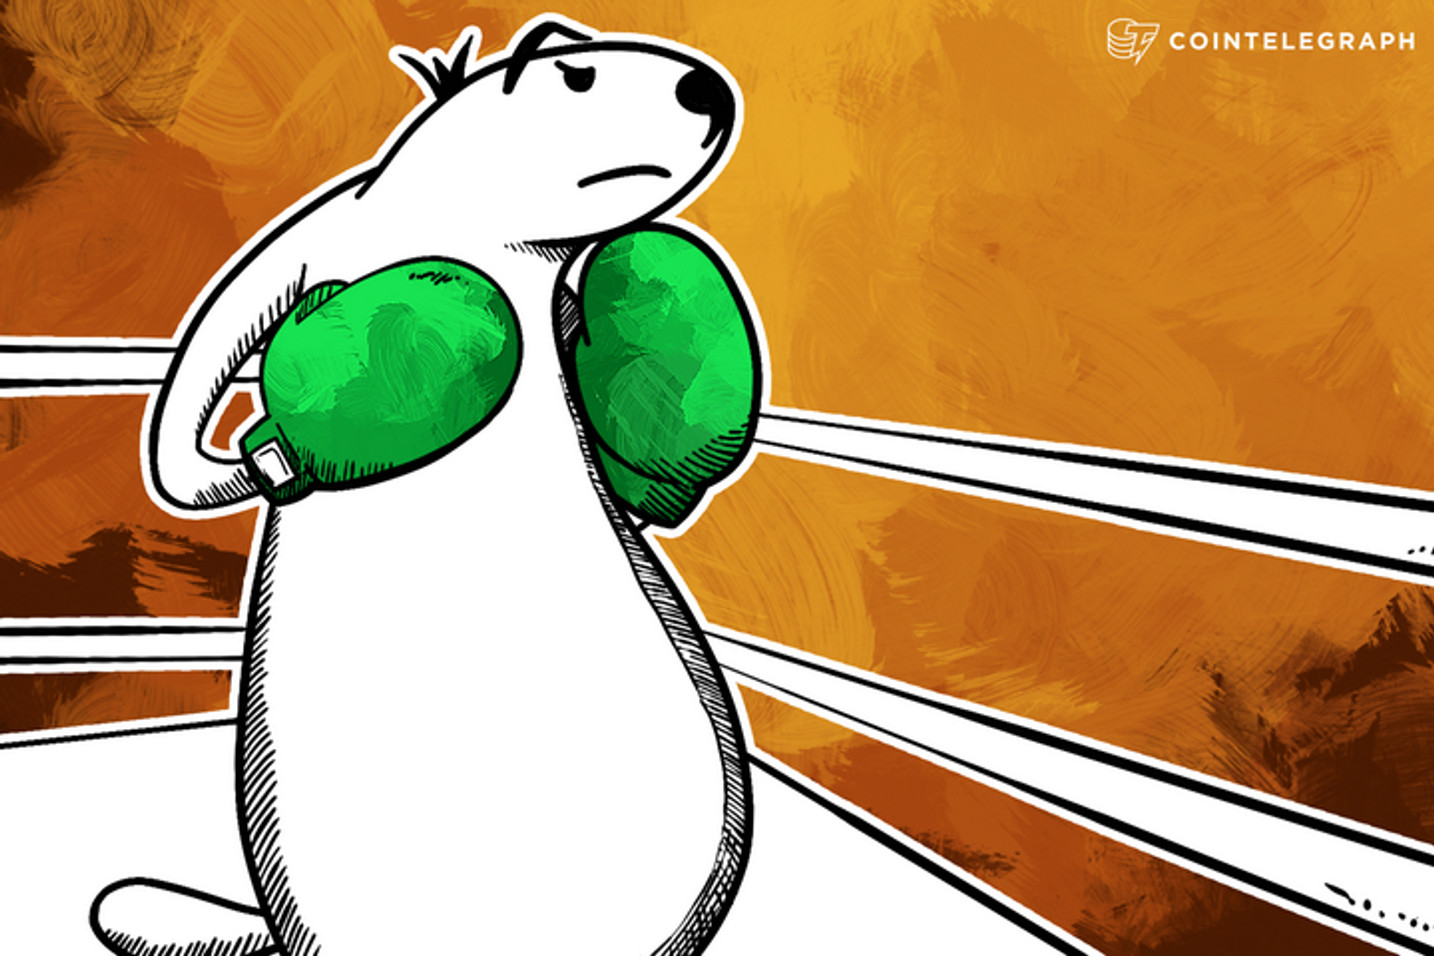 Blockchain Startup to Corporate Bully: 'We're Not Going to Take This Lying Down'